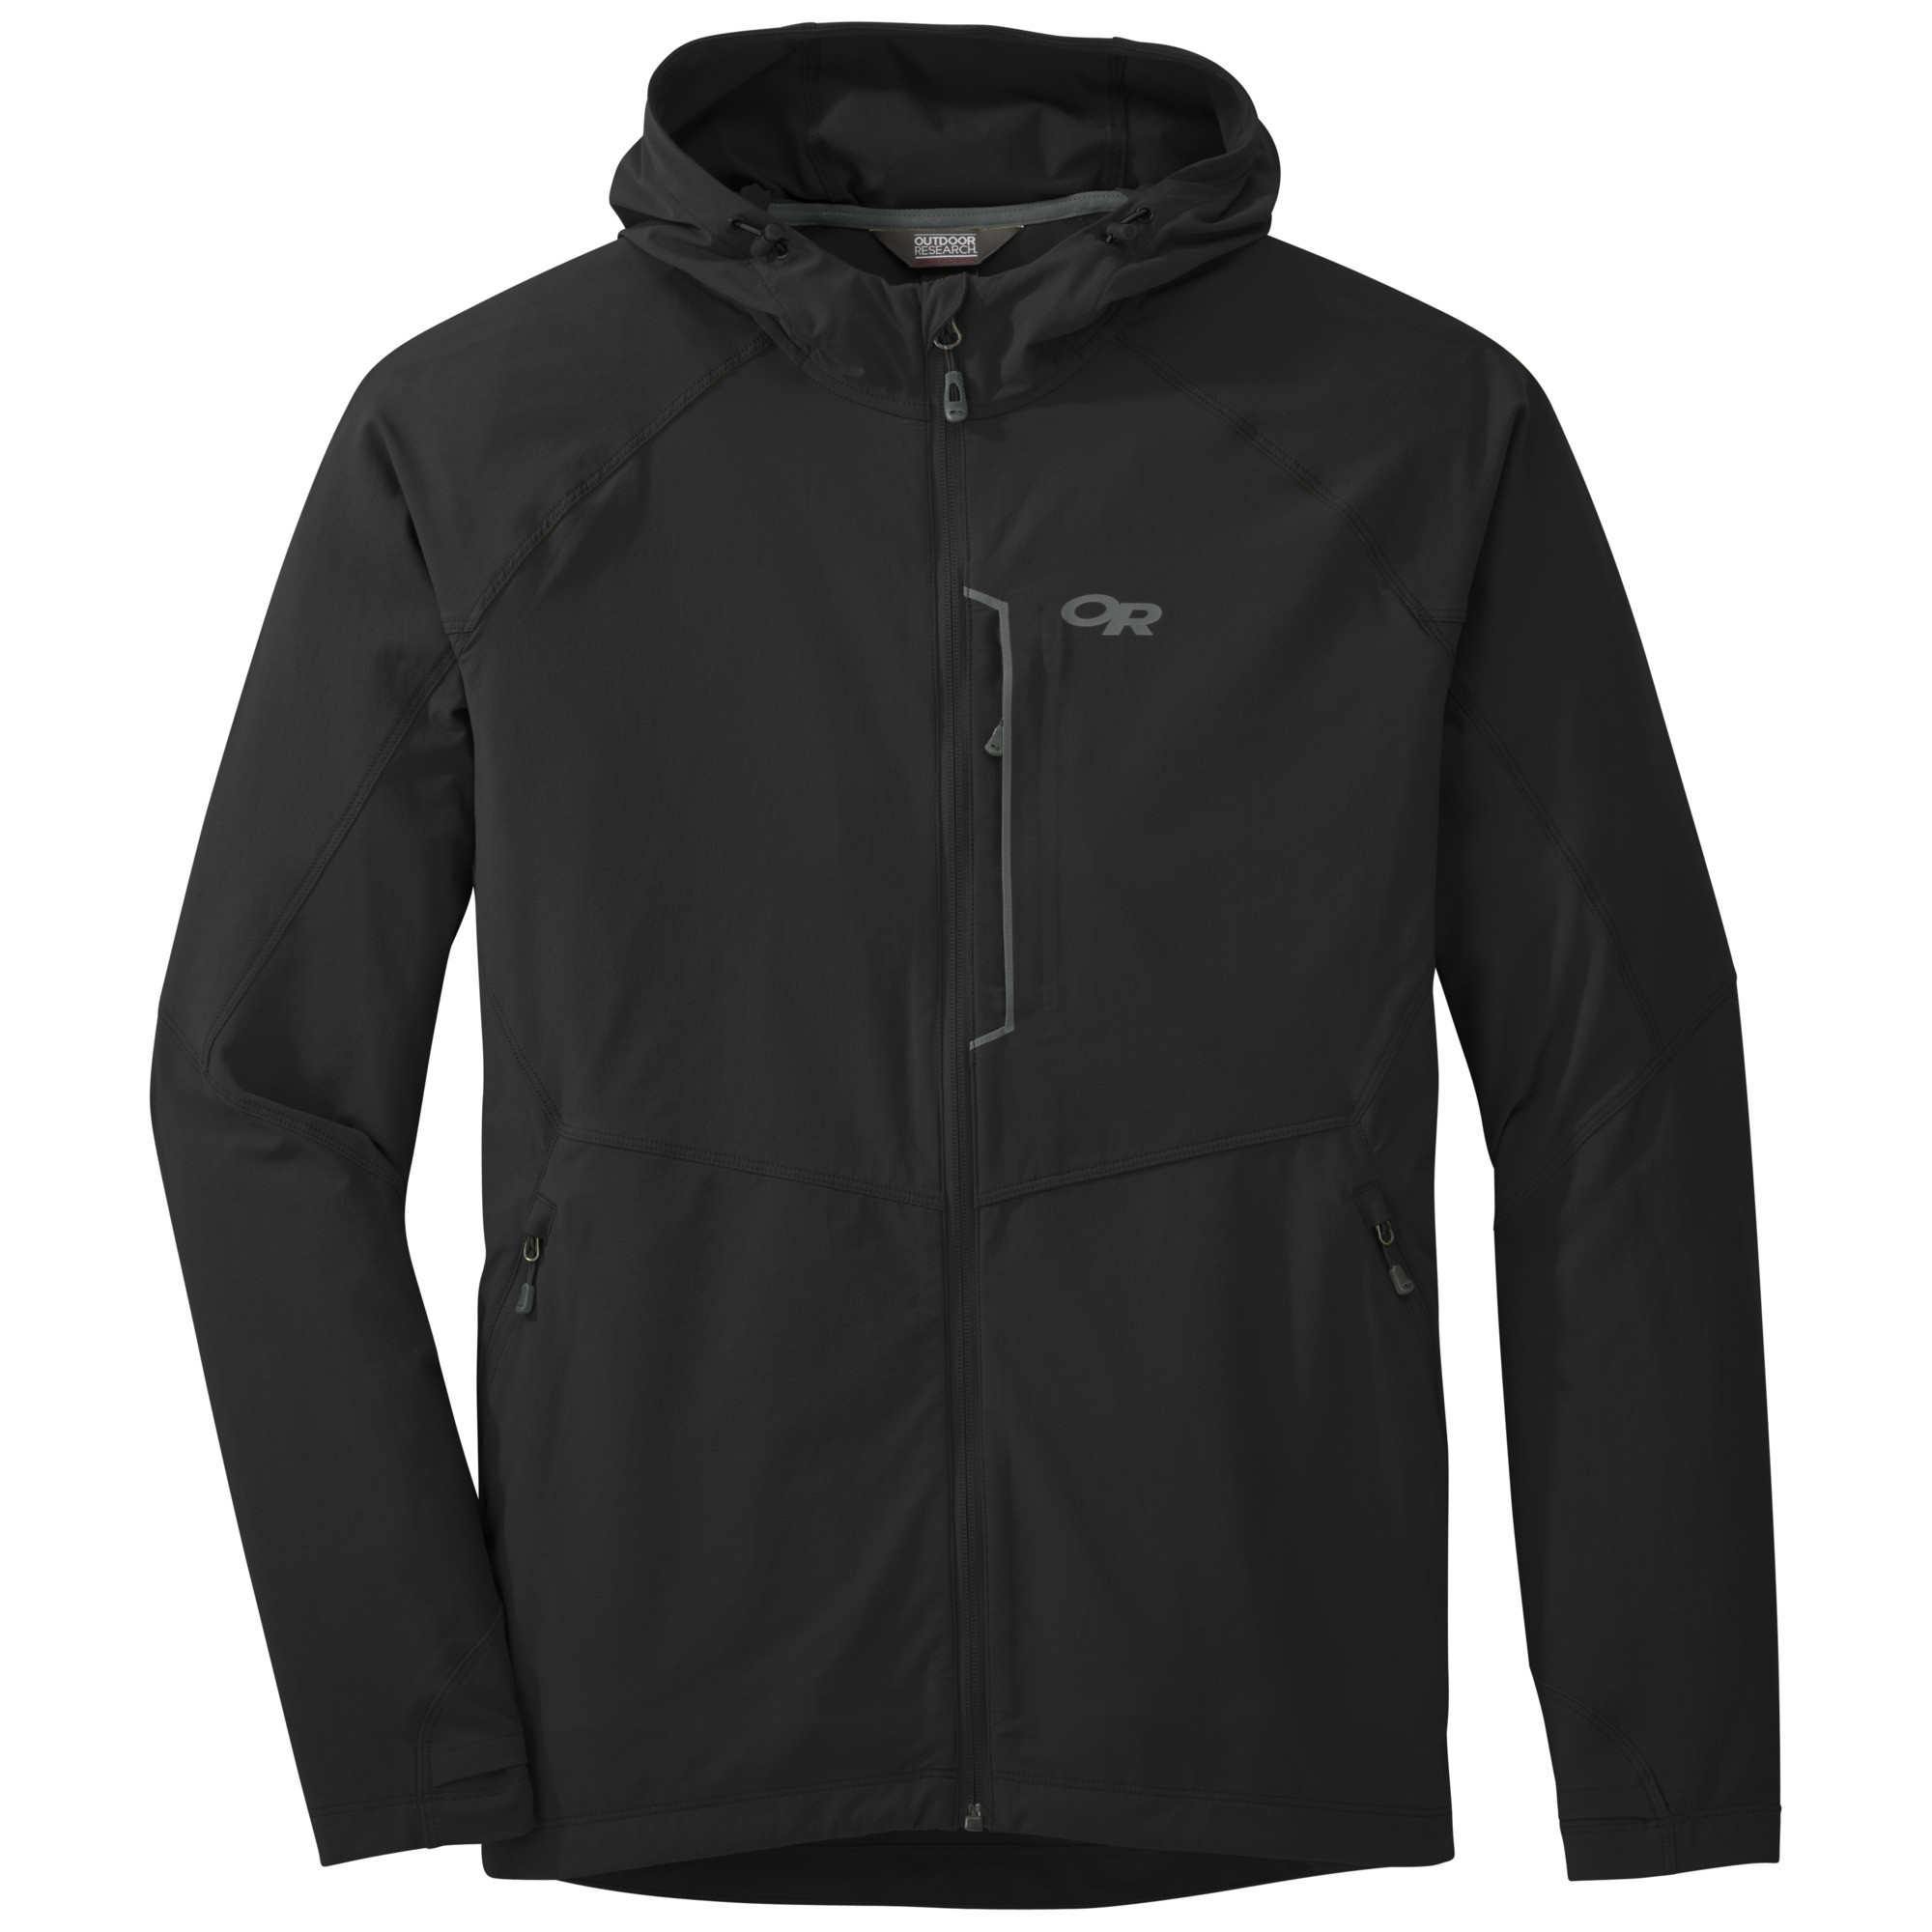 Men's Ferrosi Hooded Jacket - black | Outdoor Research